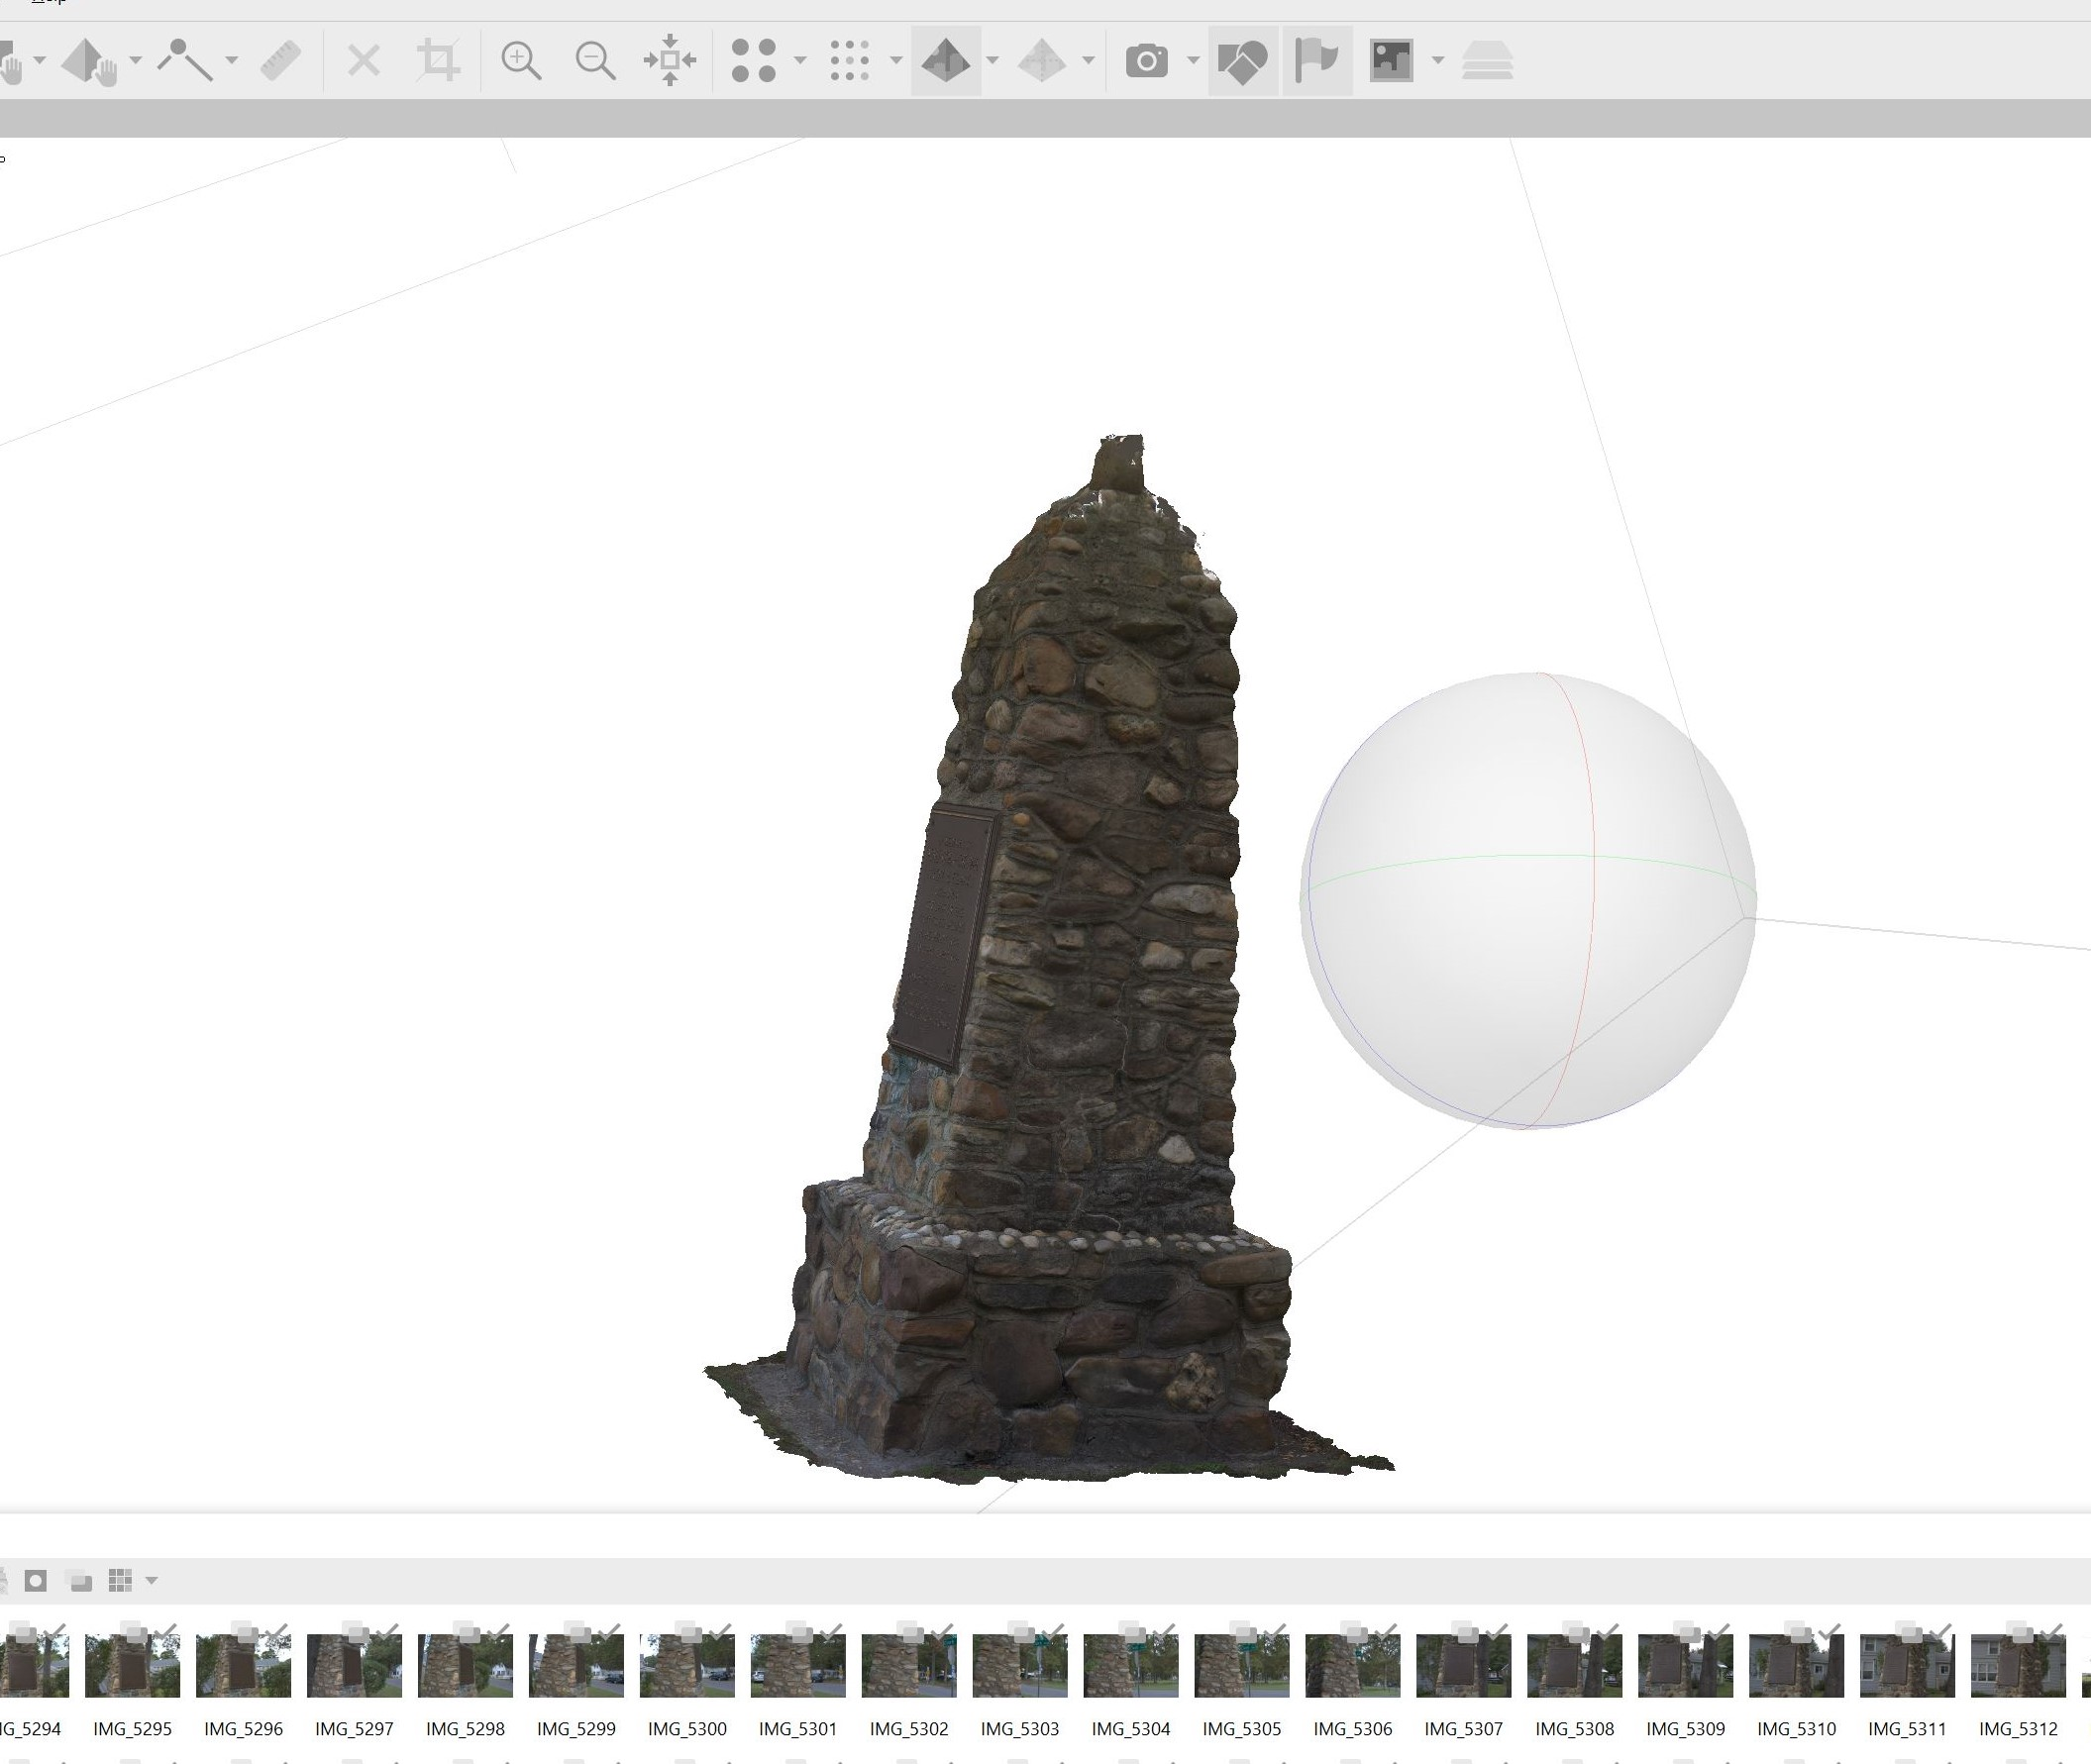 Photogrammetry as a Tool for Heritage Work